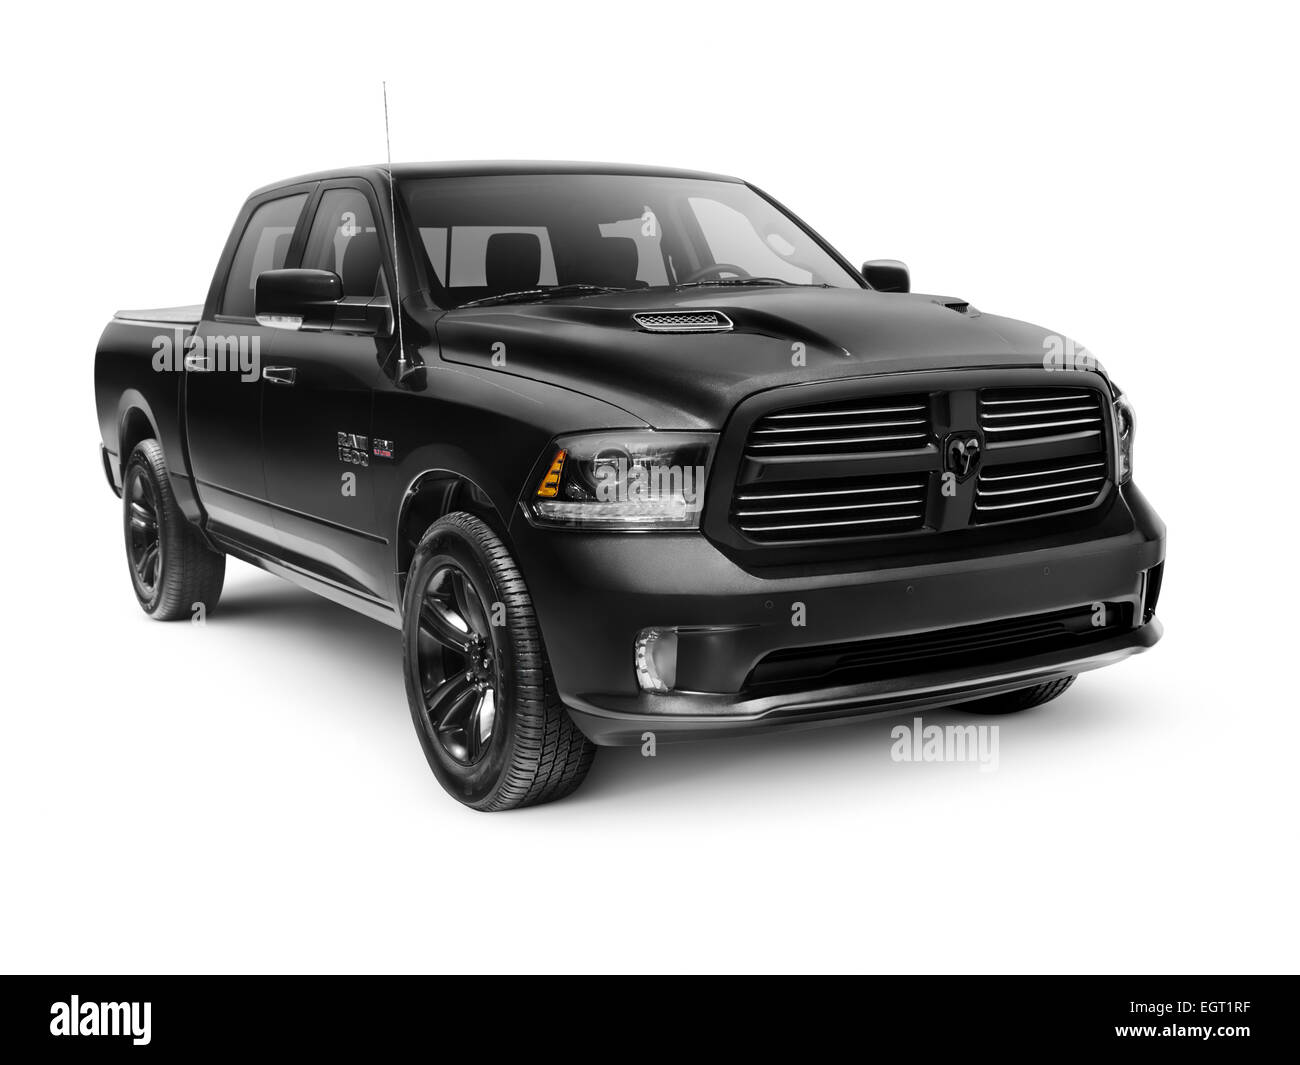 black 2015 dodge ram 1500 sport crew cab 4x4 pickup truck isolated on stock photo royalty free. Black Bedroom Furniture Sets. Home Design Ideas